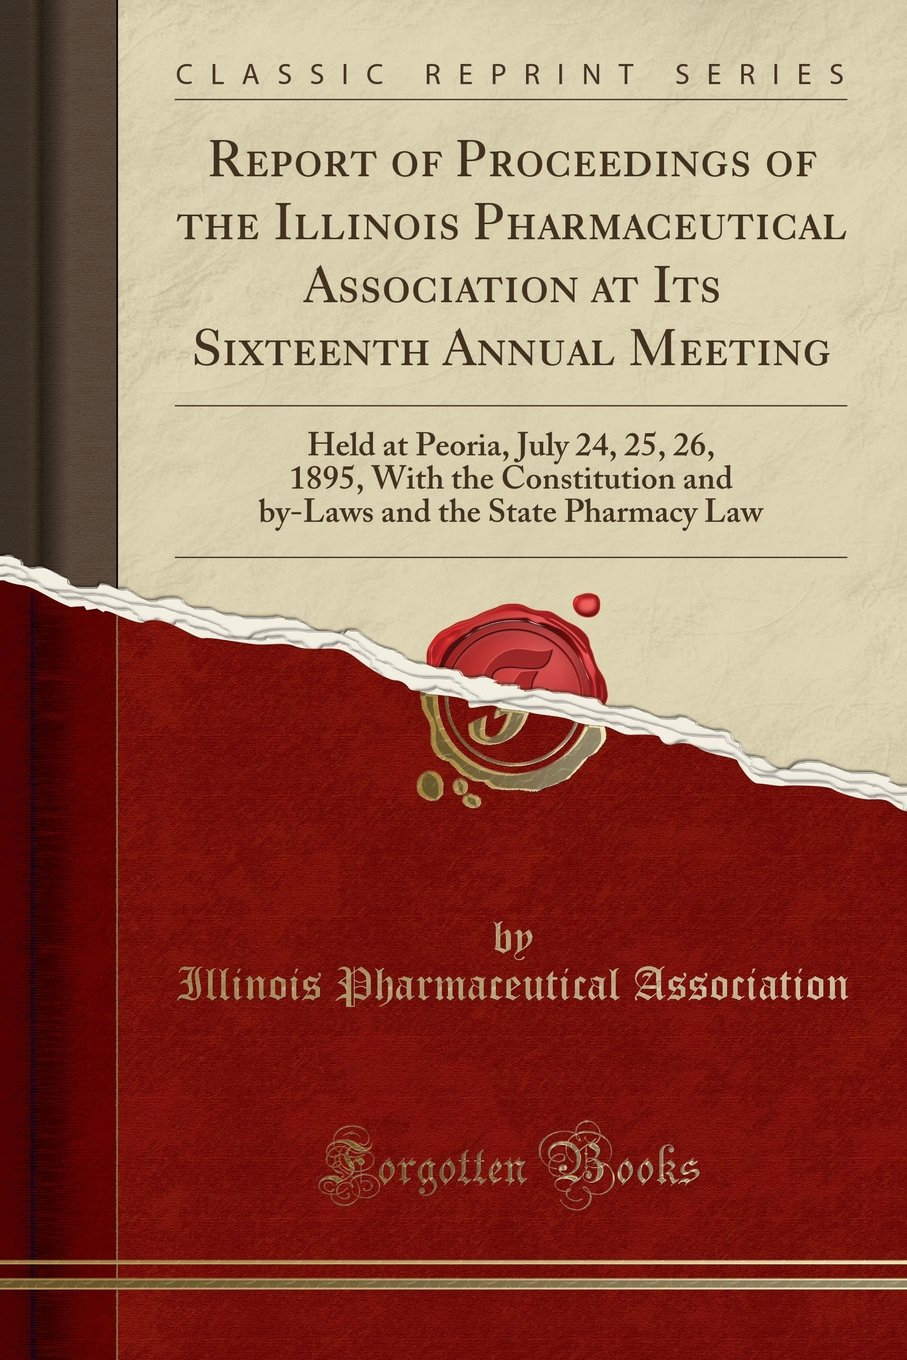 Read Online Report of Proceedings of the Illinois Pharmaceutical Association at Its Sixteenth Annual Meeting: Held at Peoria, July 24, 25, 26, 1895, With the ... and the State Pharmacy Law (Classic Reprint) ebook